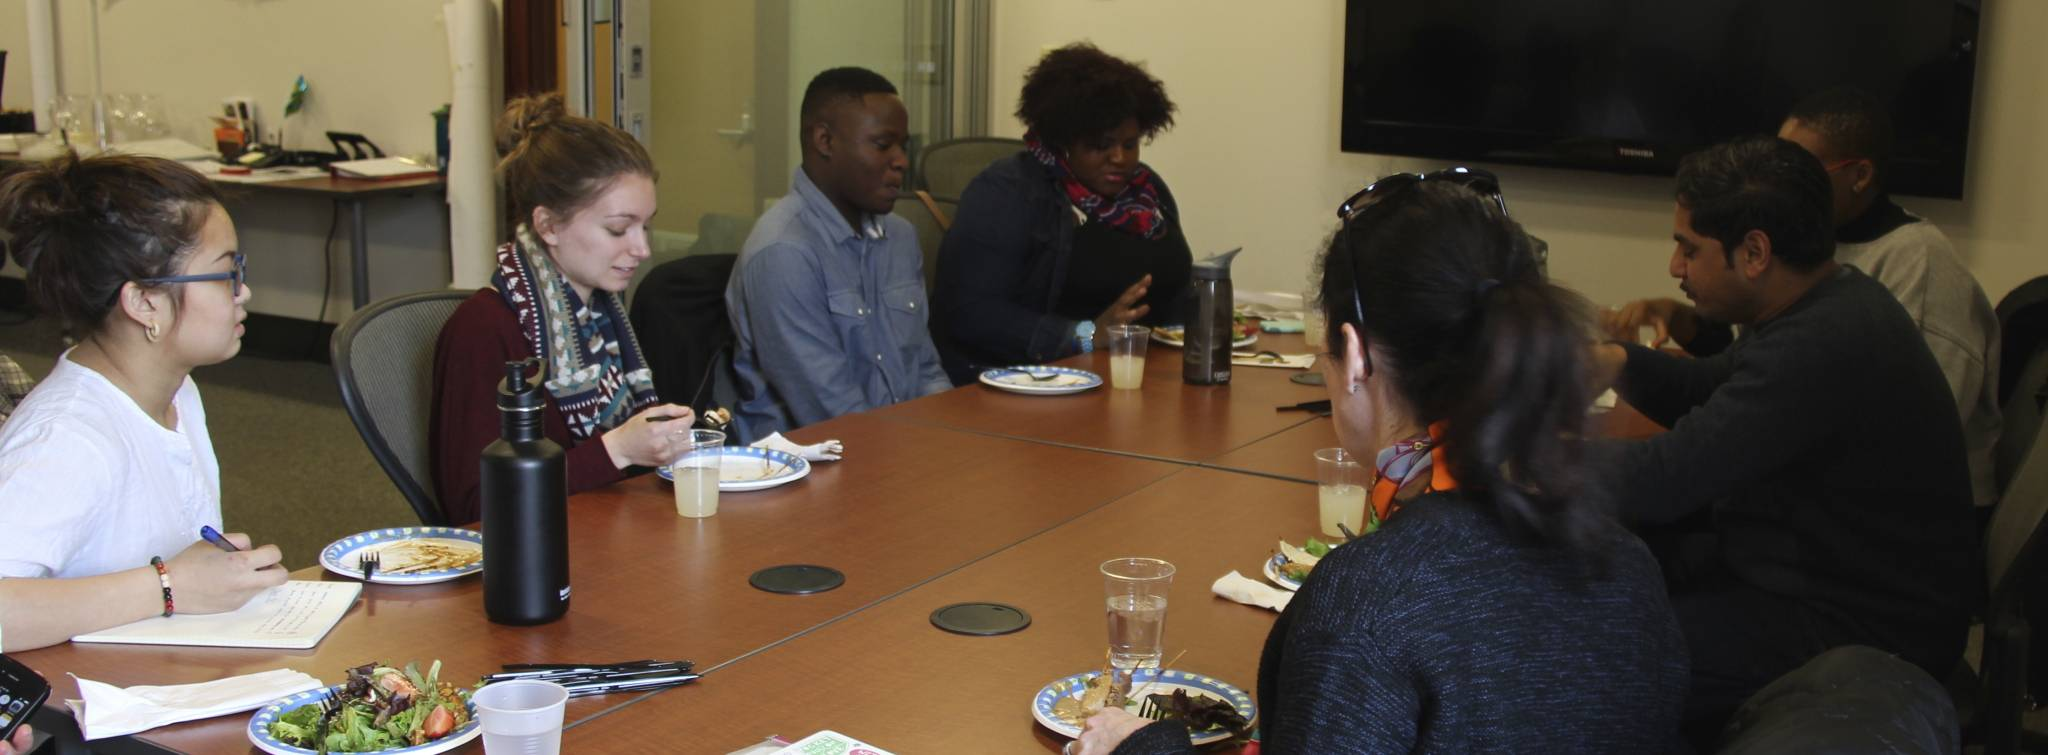 YouthFX at lunch with Skidmore students